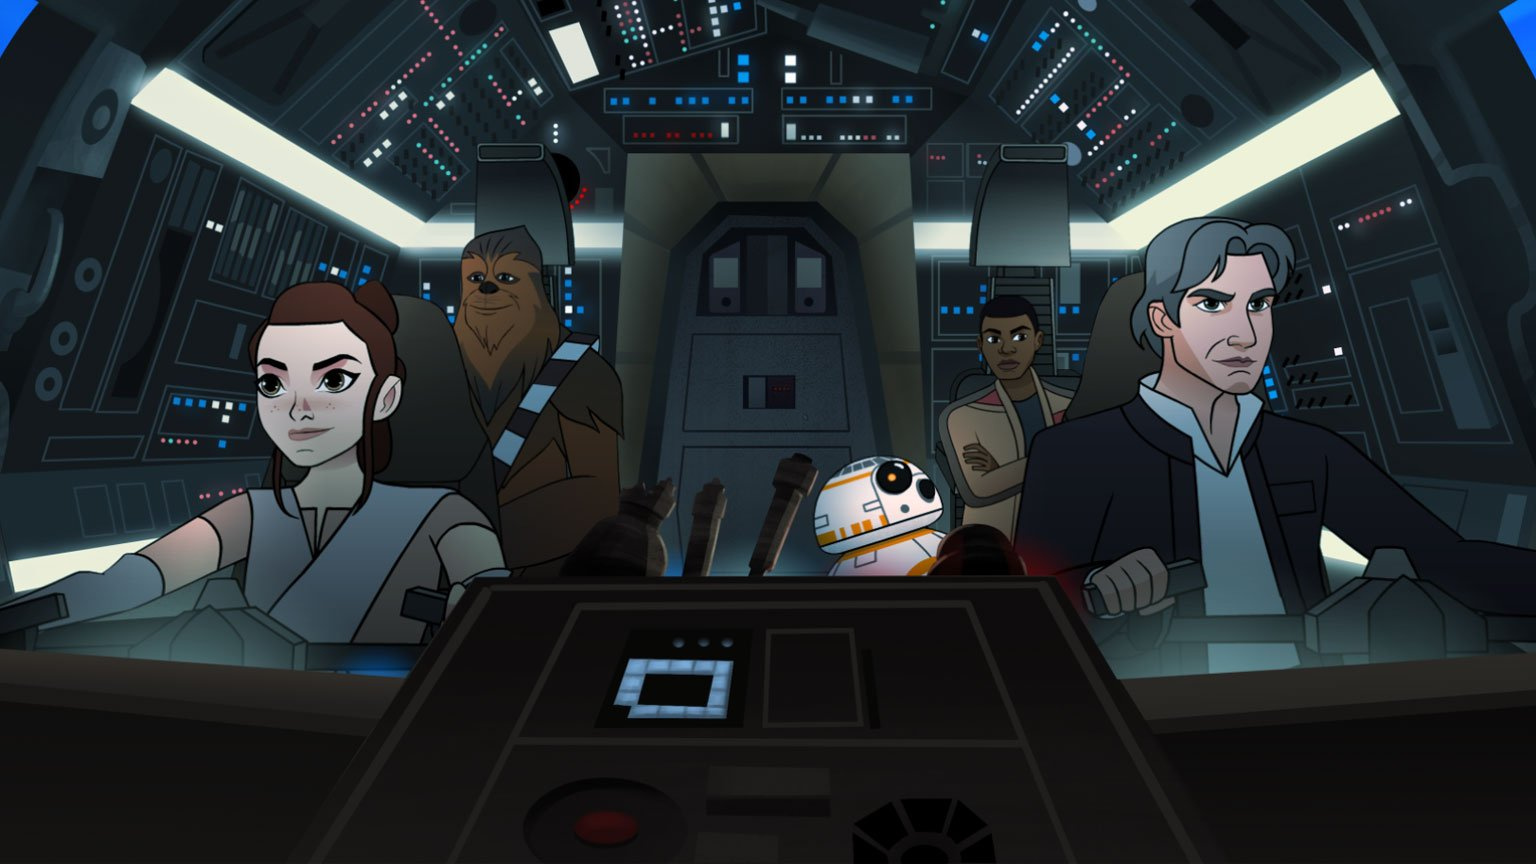 """A funny thing happens on the way to Maz Kanata's castle in Star Wars #ForcesOfDestiny: """"Tracker Trouble."""" https://t.co/lL5JEDEXGM"""